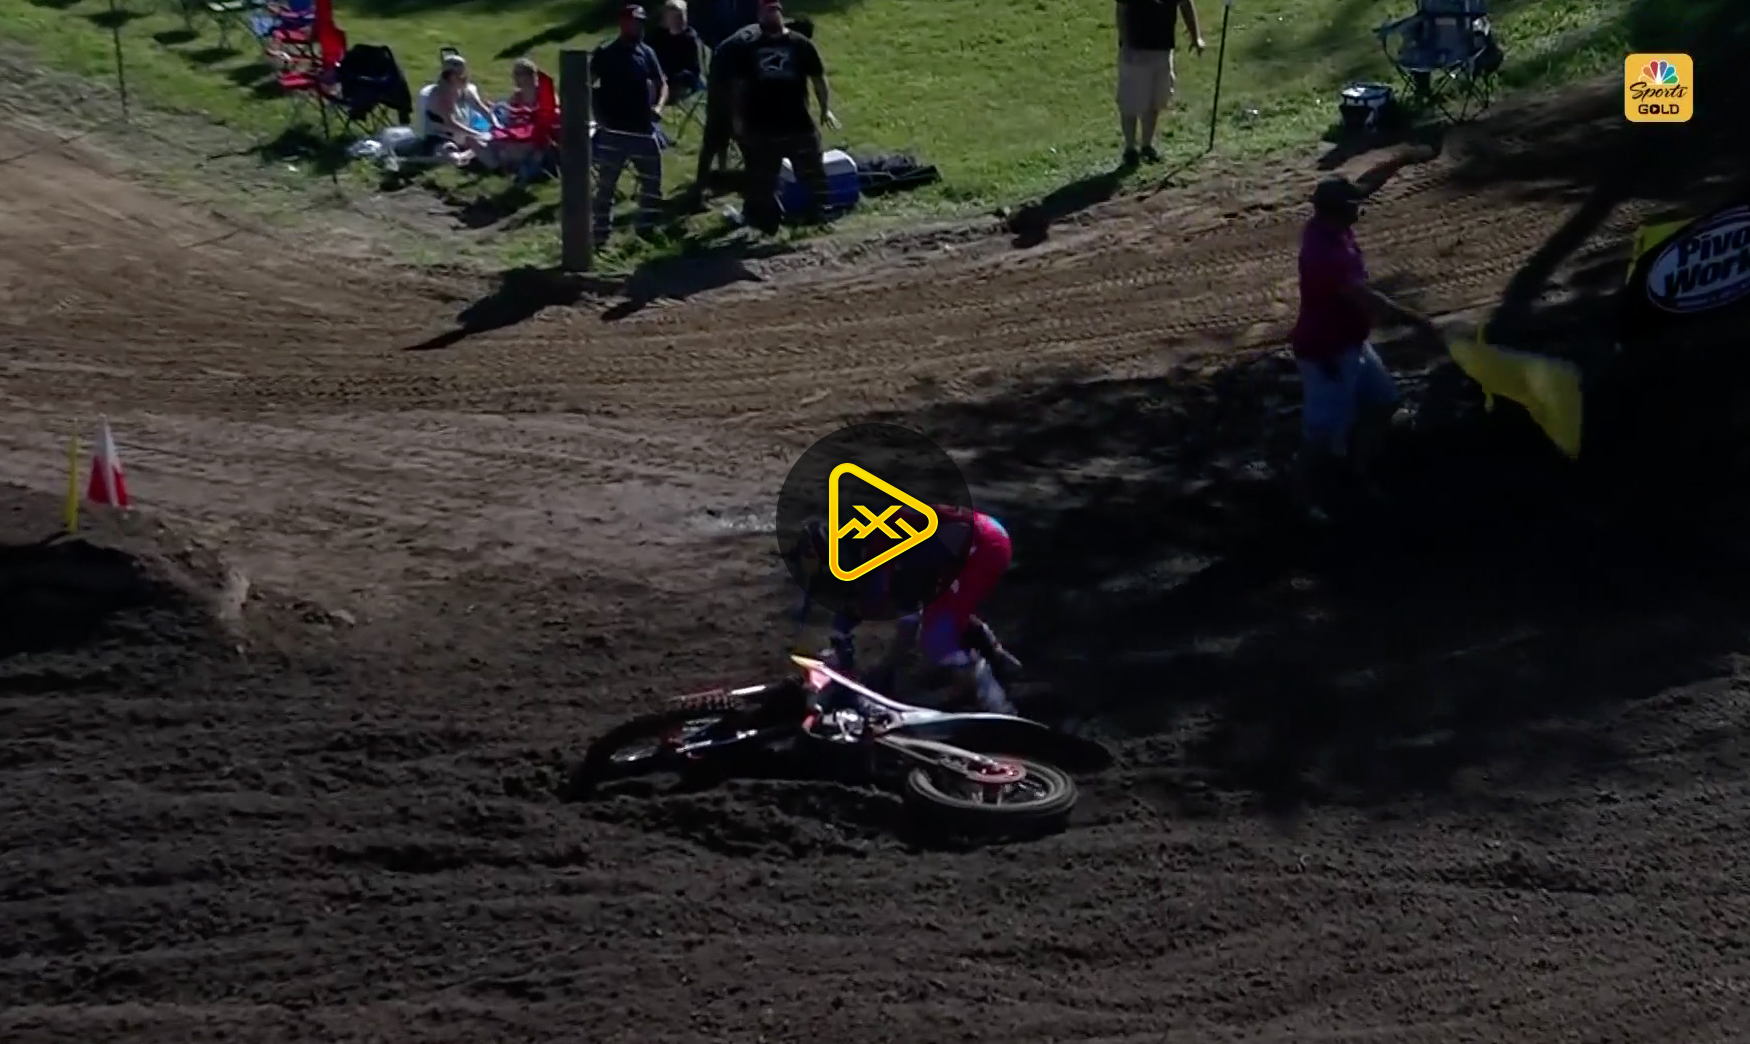 Marvin Musquin Crash from Qualifying at RedBud